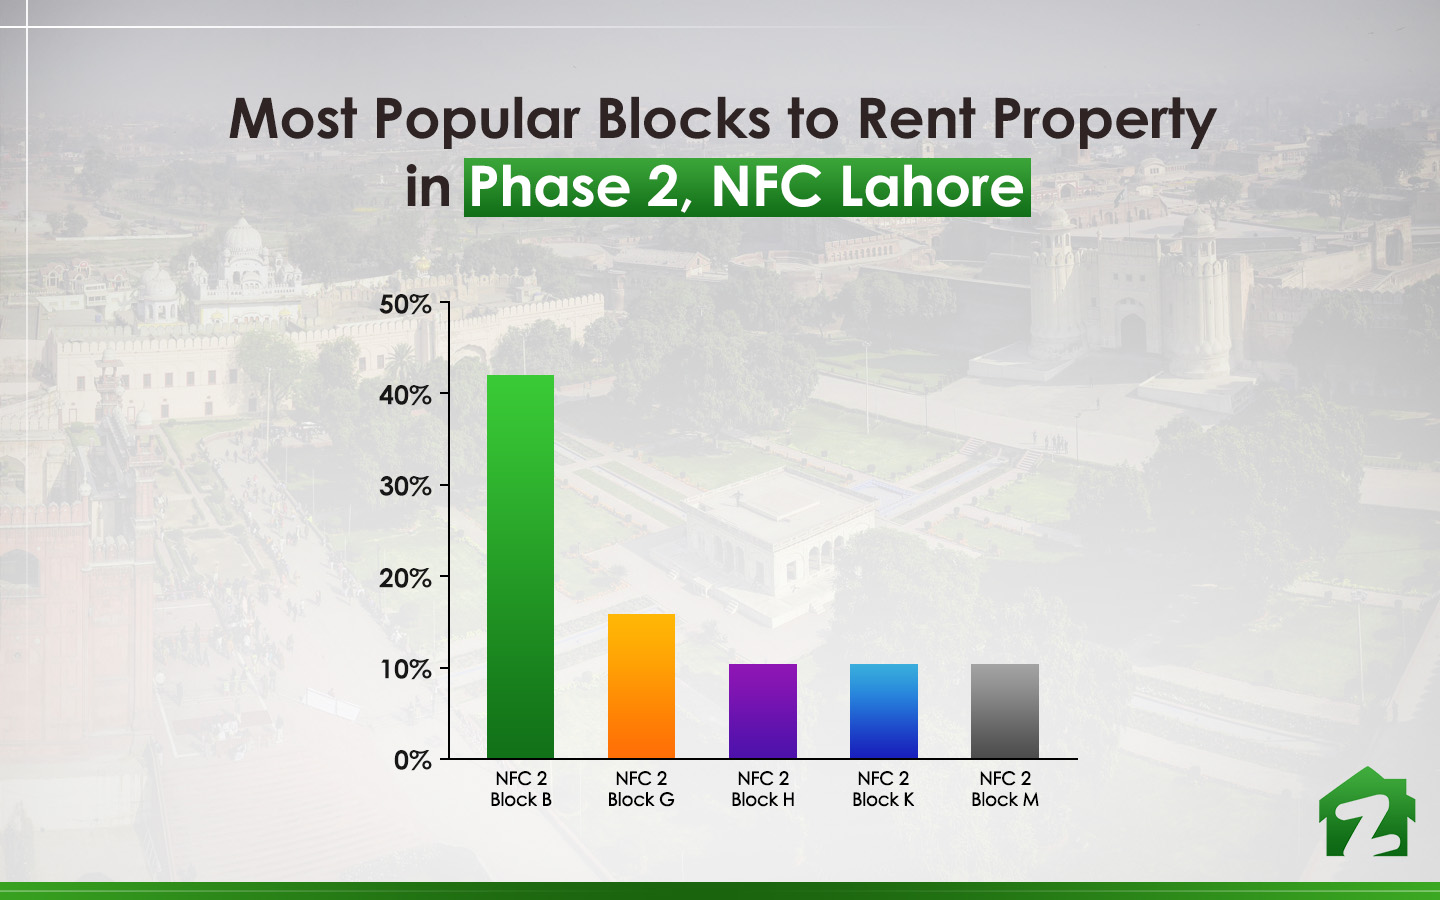 Most searched block to rent property in NFC 2, Lahore